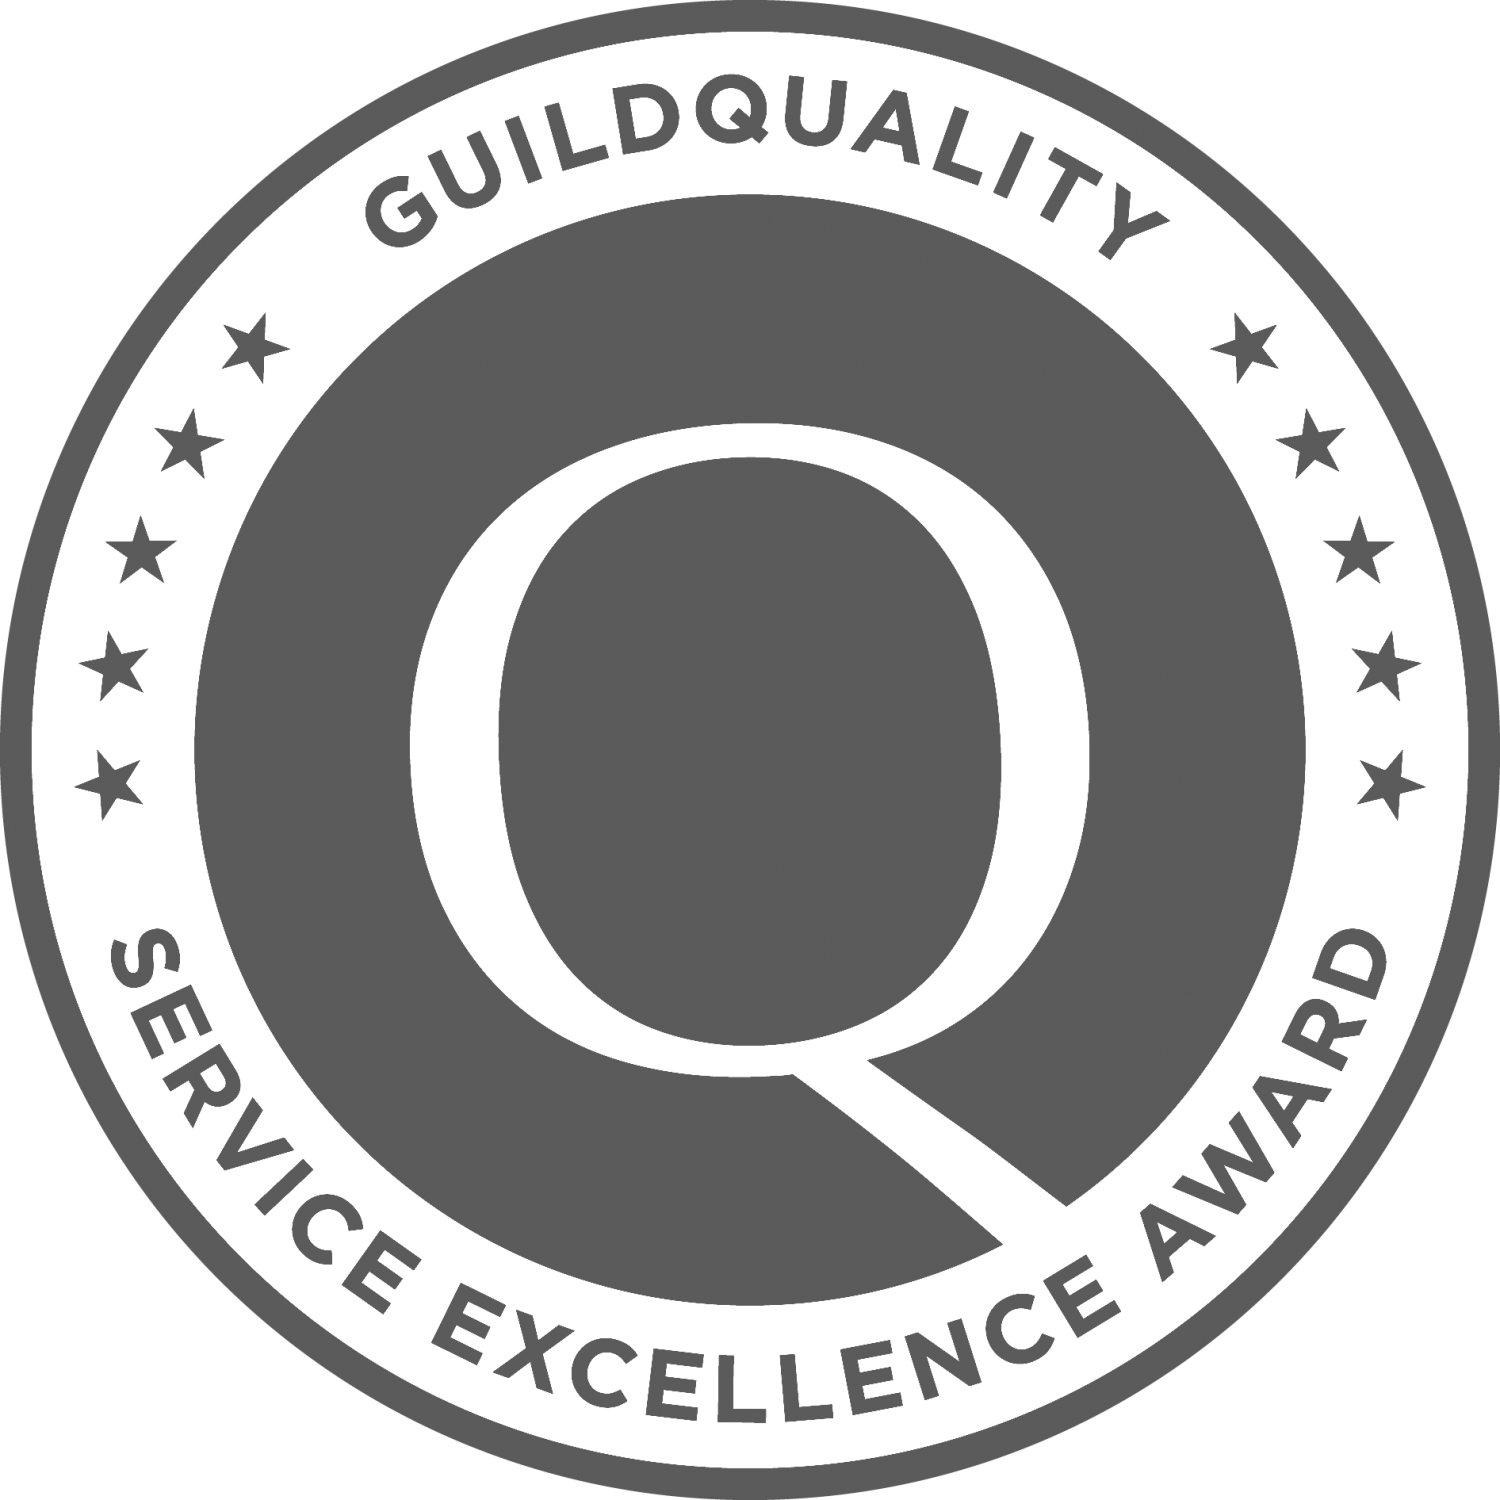 Guilde Quality Service Award